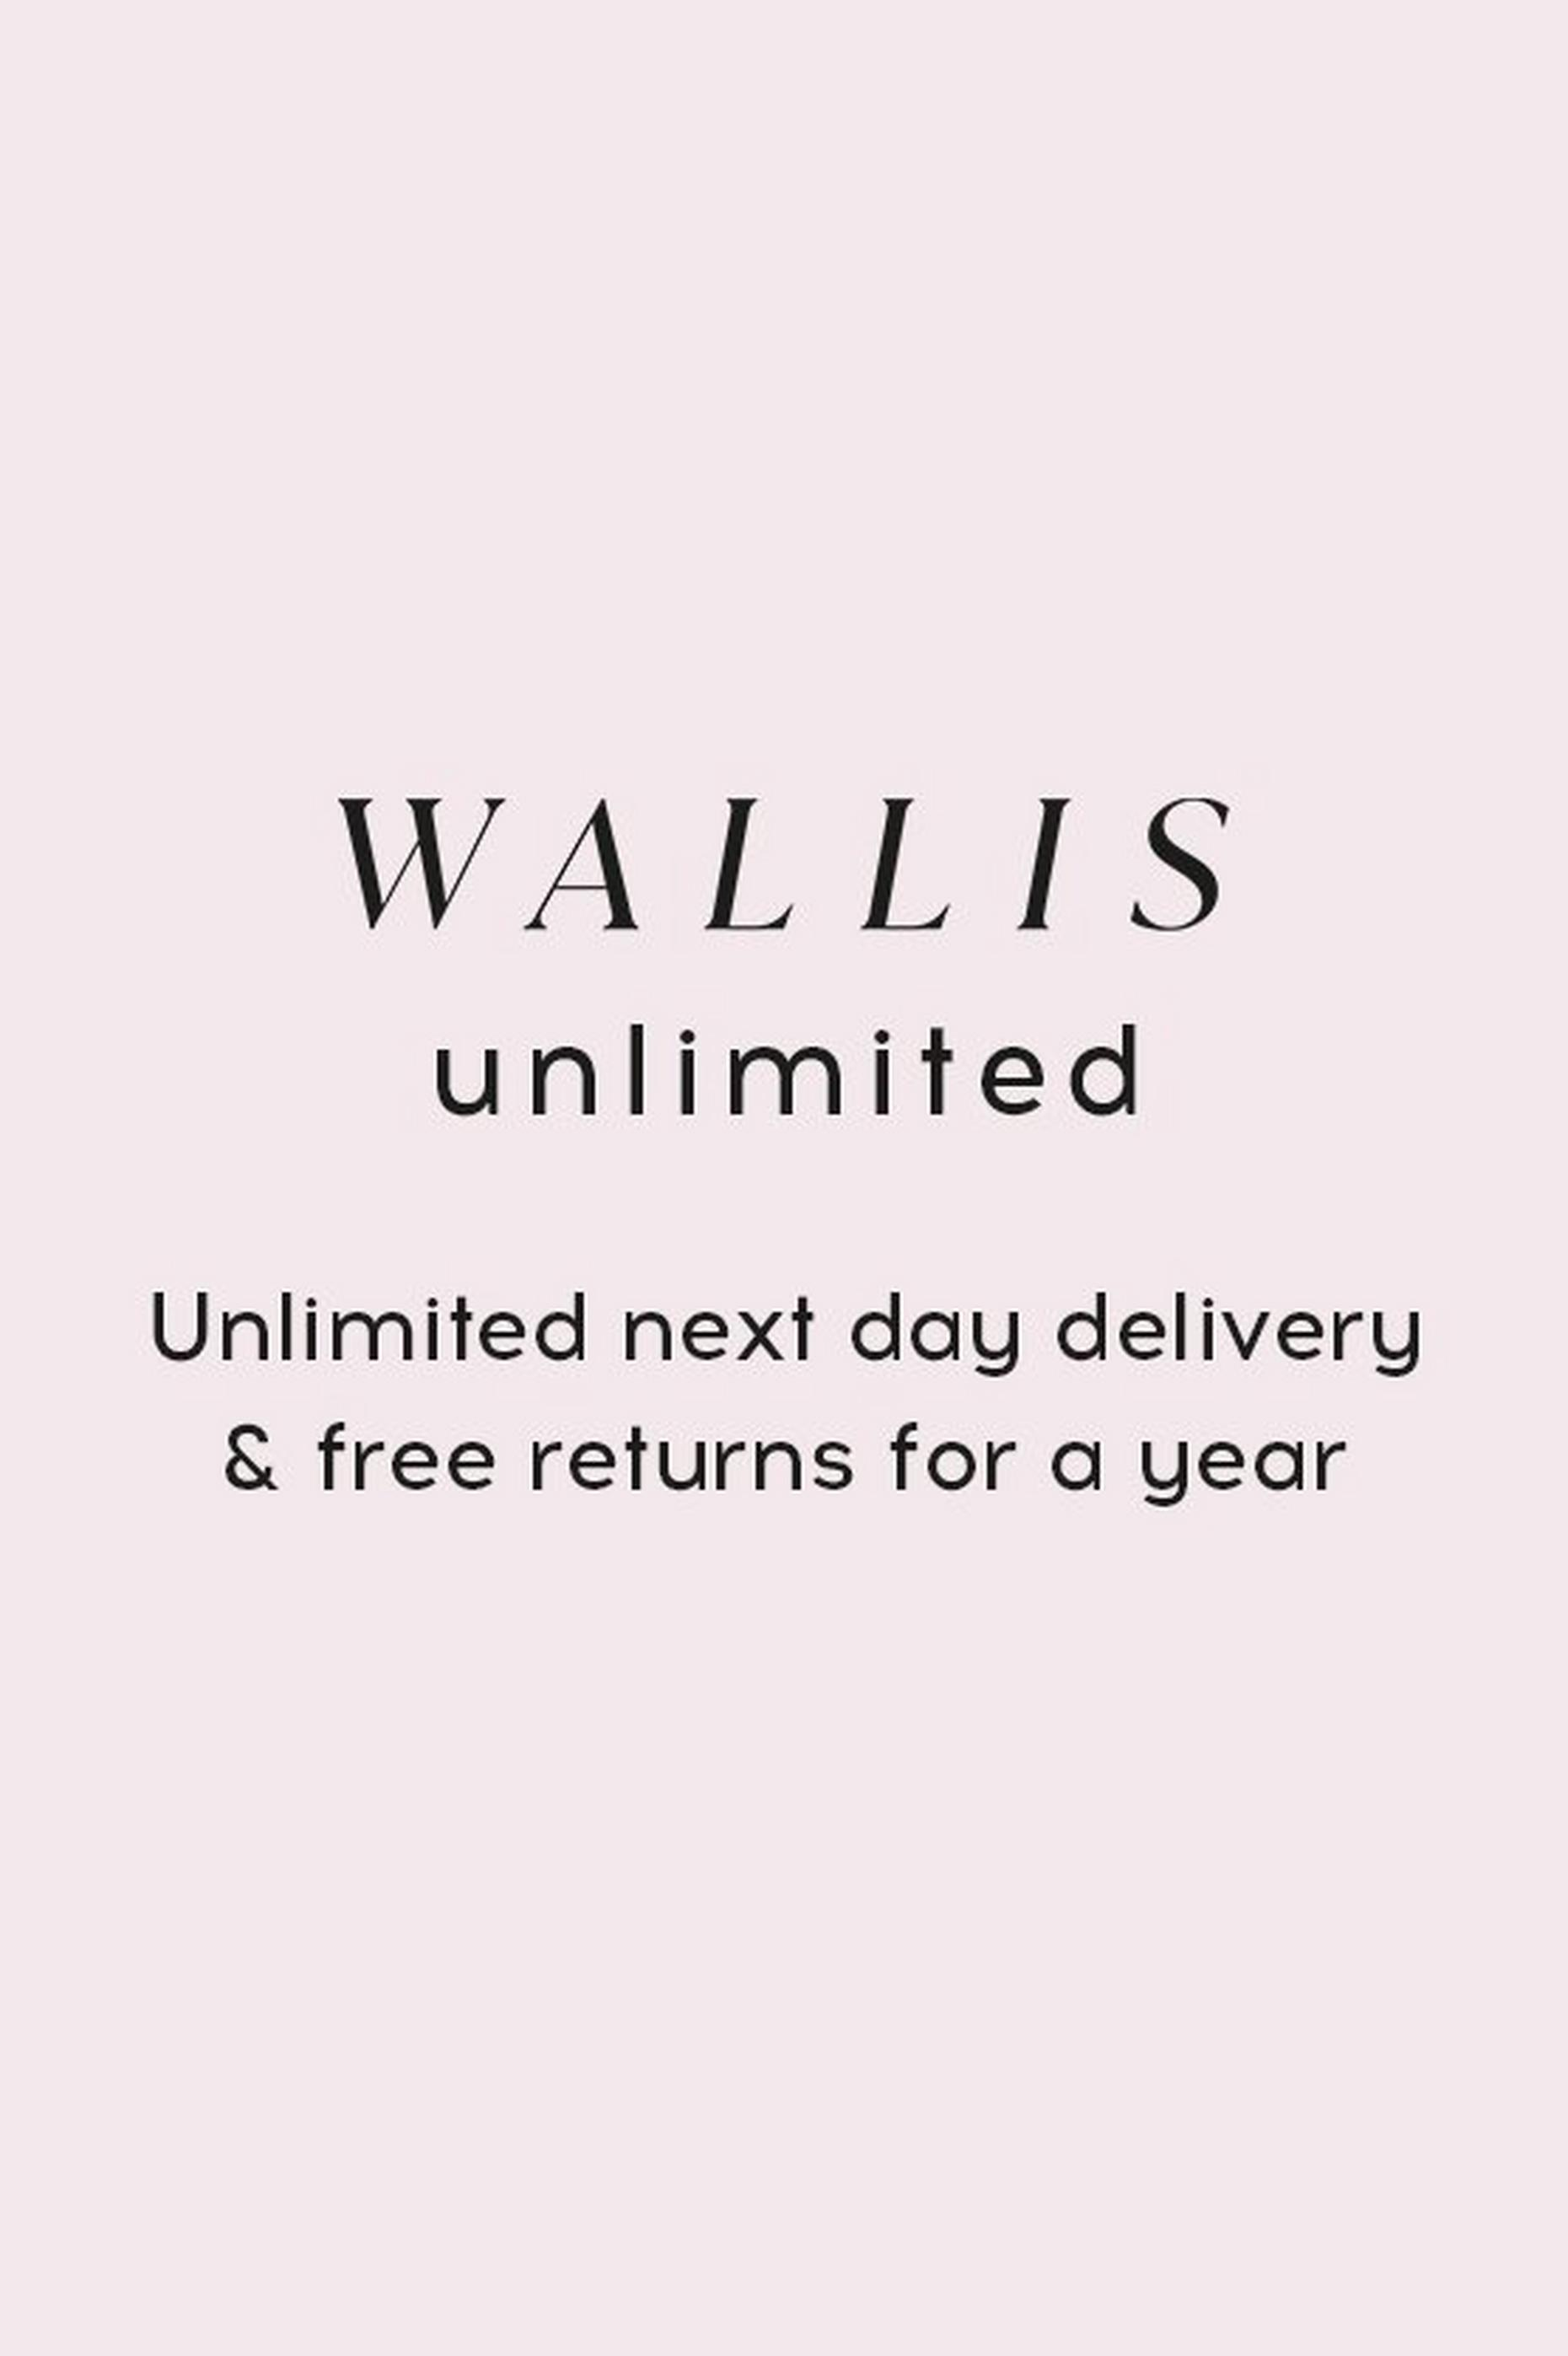 UNLIMITED NEXT DAY DELIVERY